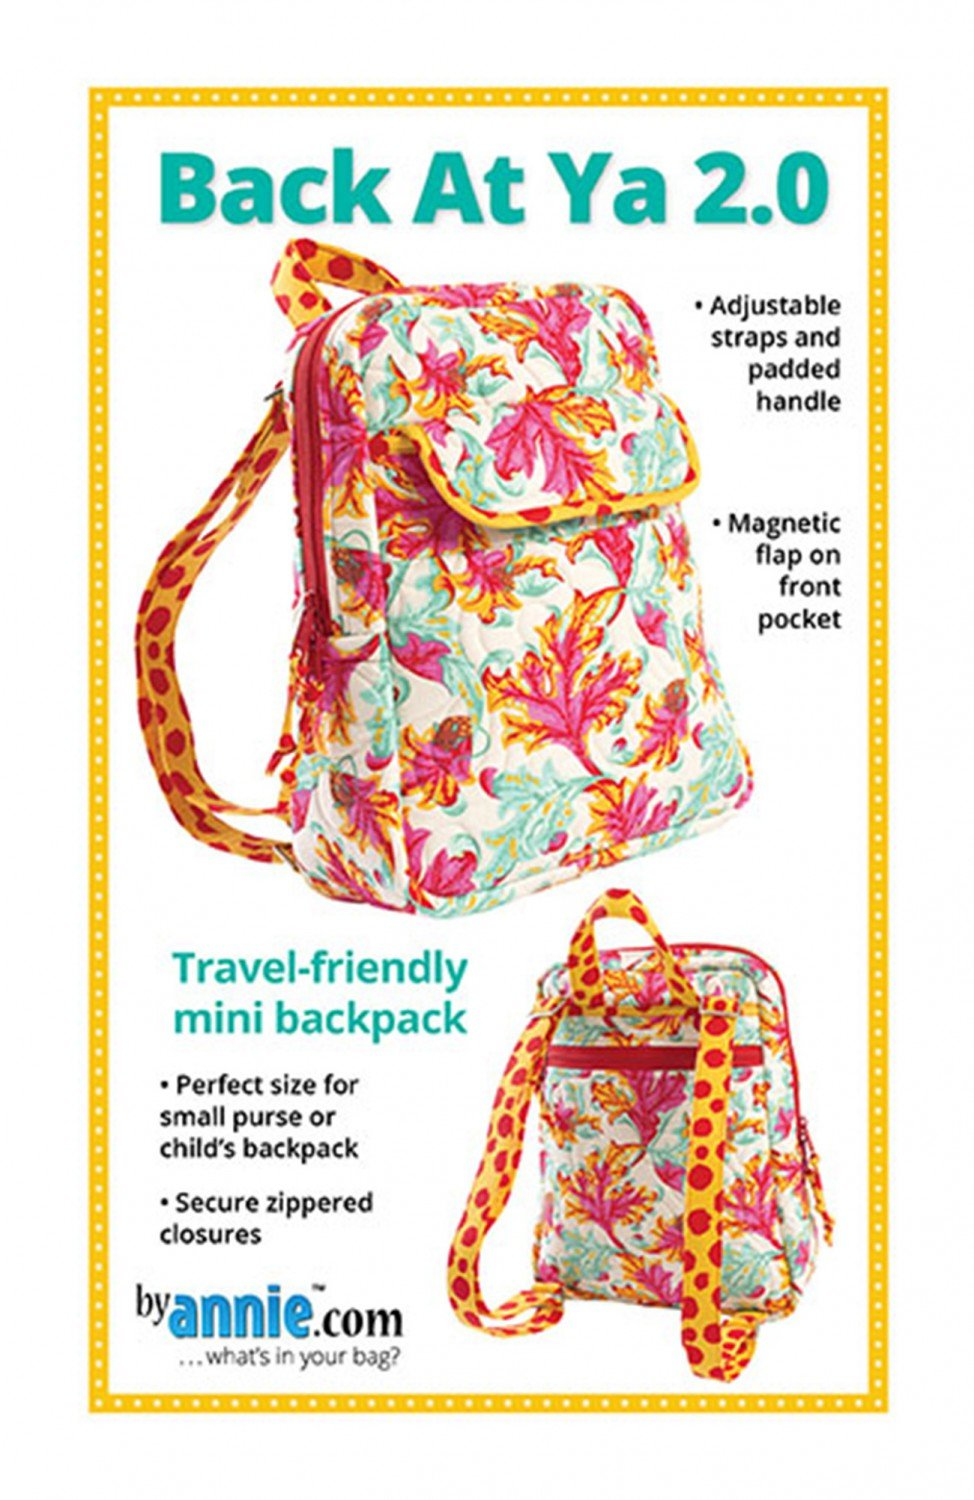 Back At Ya! Mini Backpack 2.0 PBA226-2